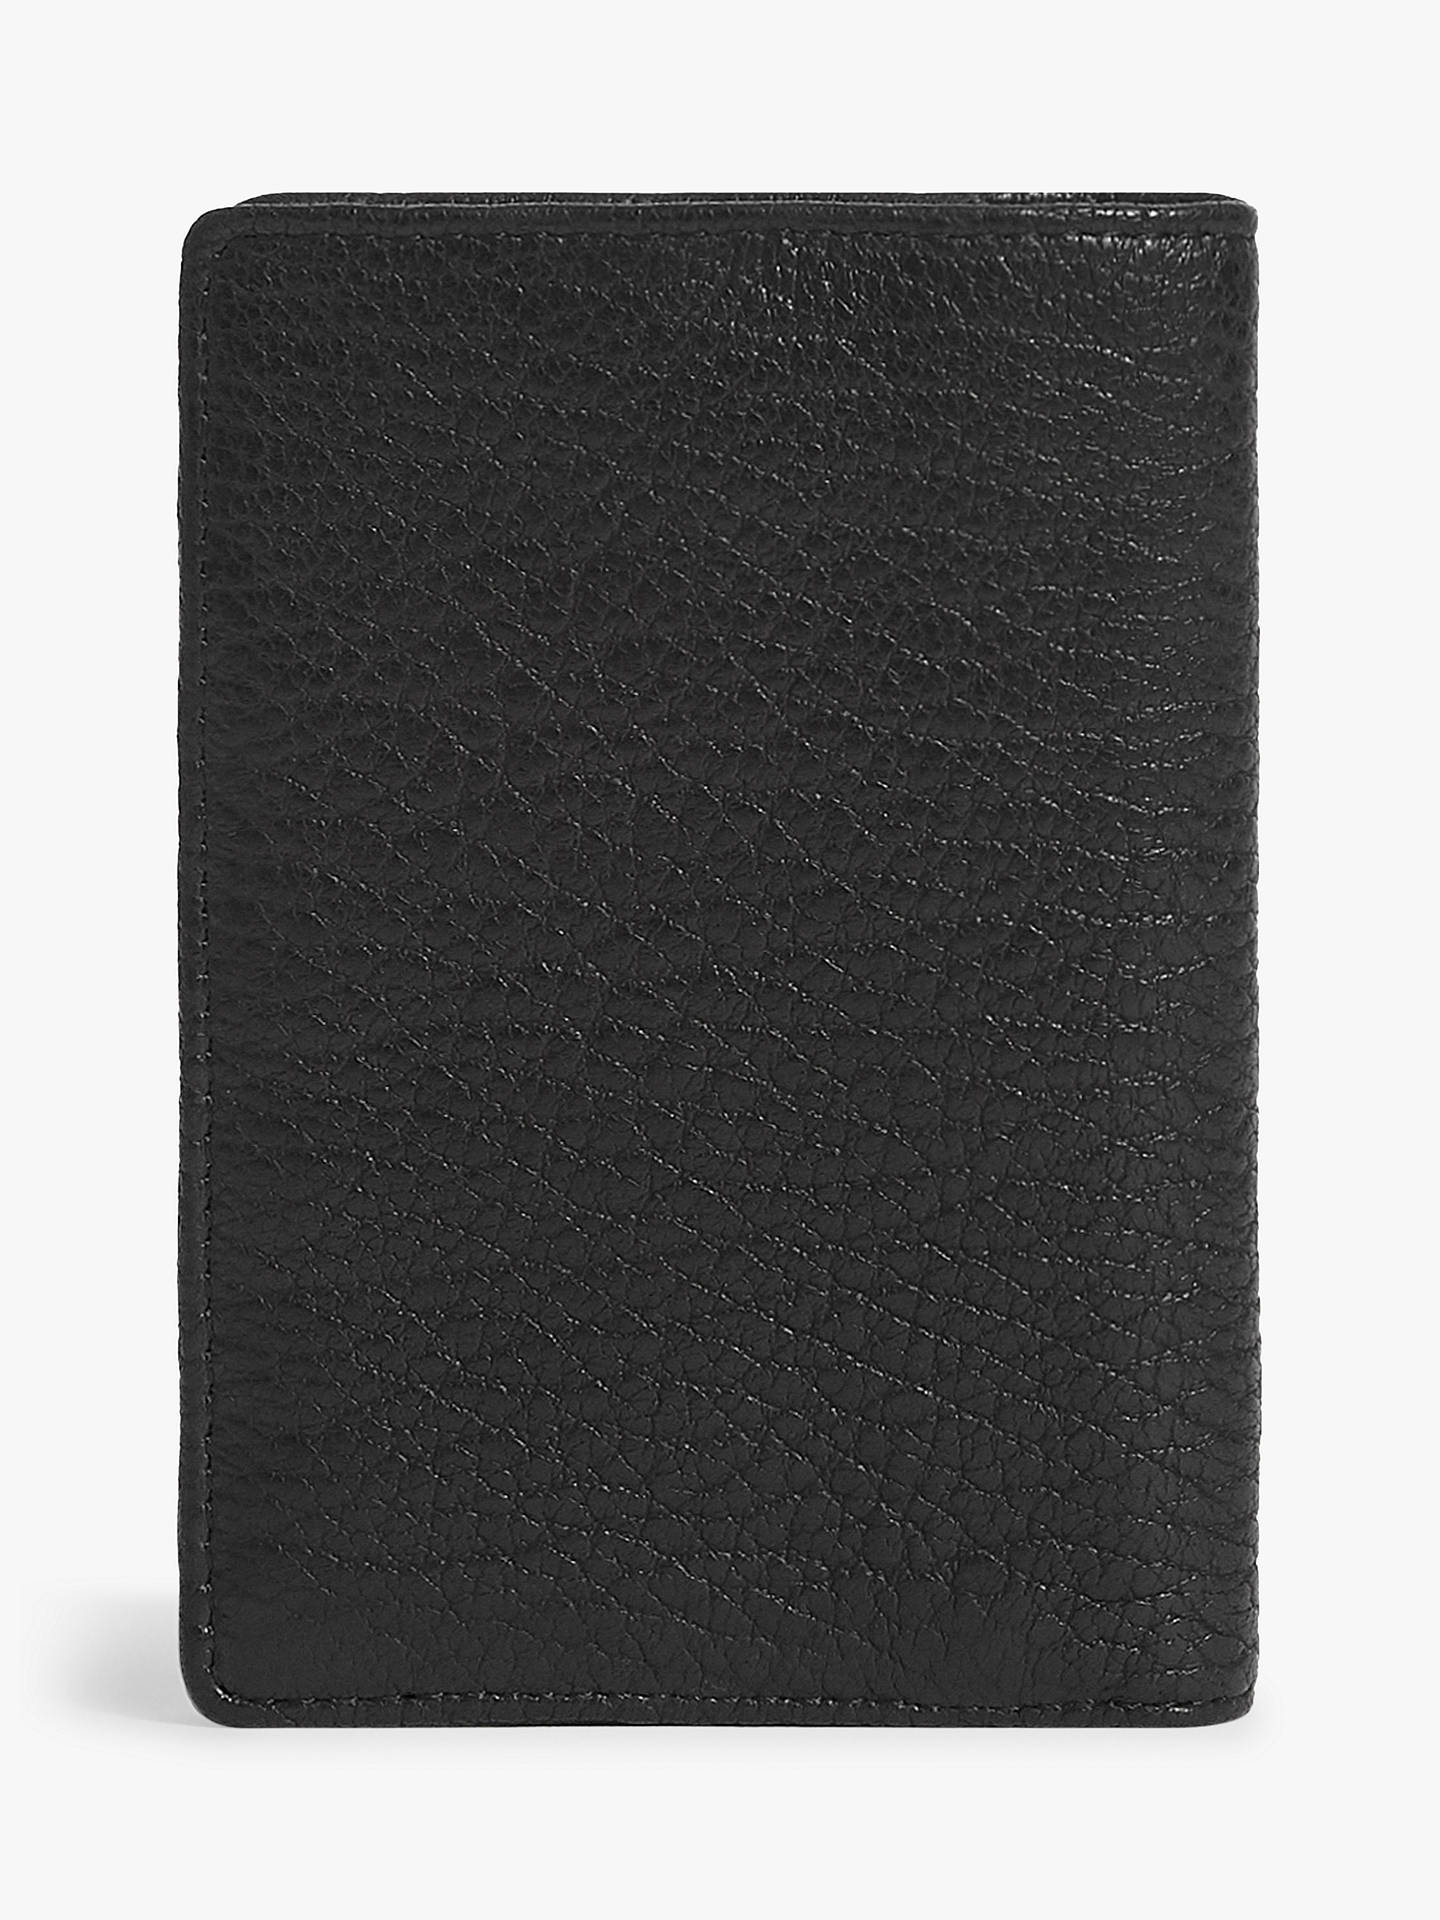 BuyAllSaints State Wallet, Onyx Black Online at johnlewis.com